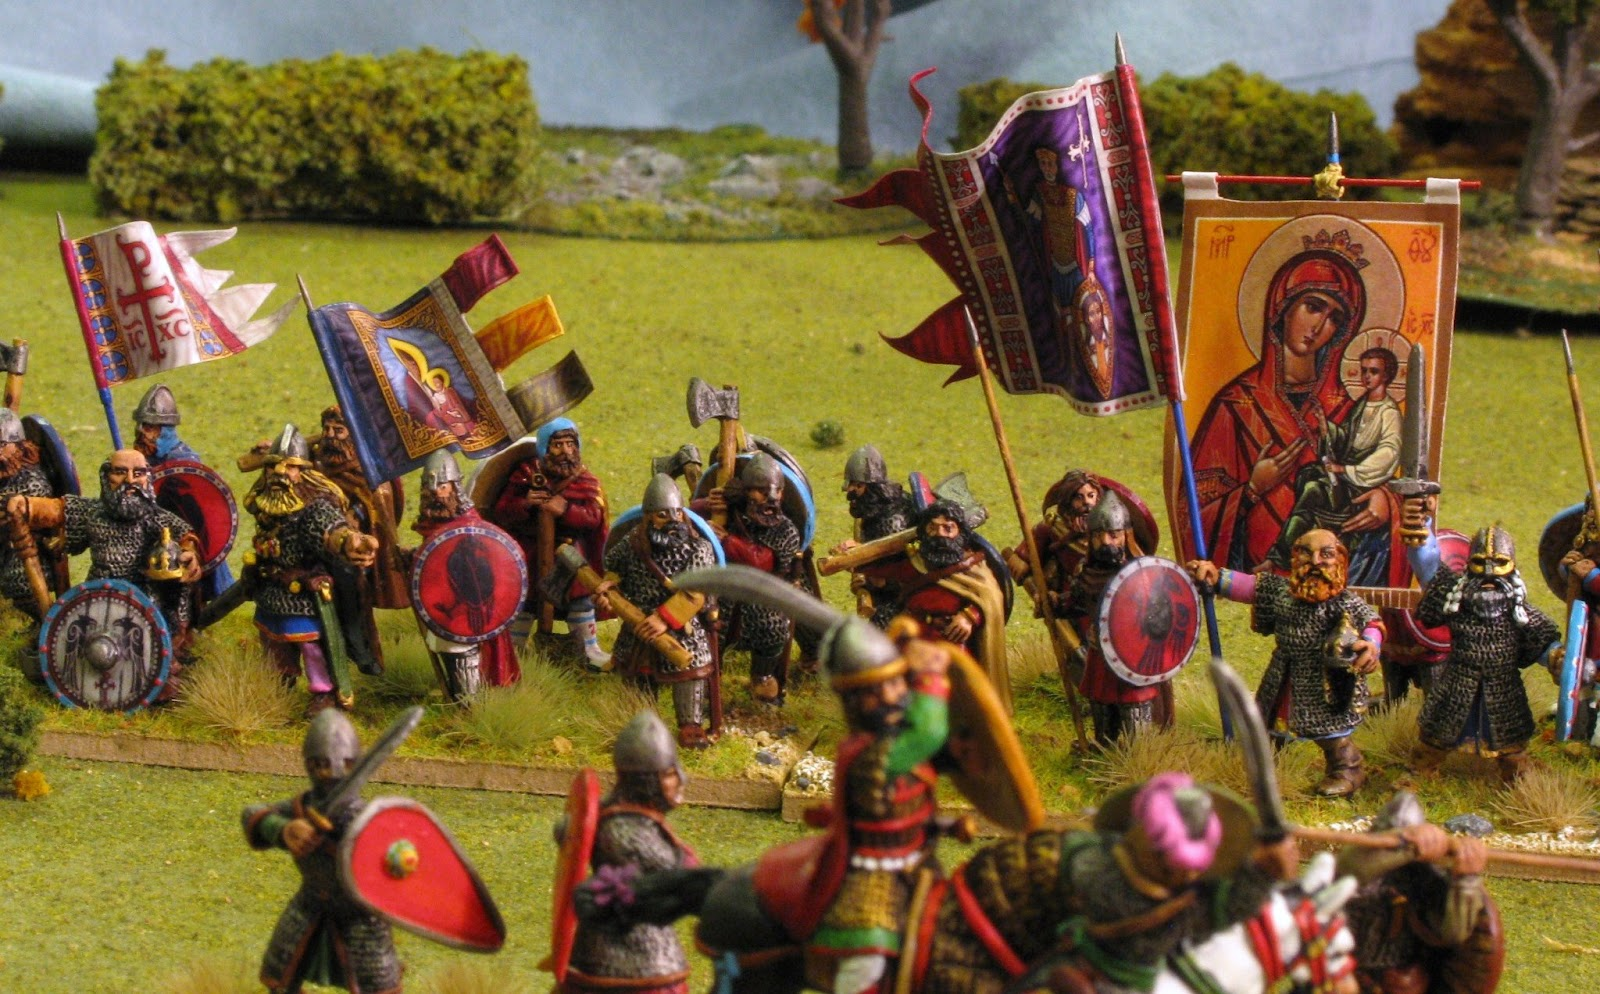 military essays byzantine armies The palaiologan army refers to the military forces of the byzantine empire from the late thirteenth century to its final collapse in the mid fifteenth century, under.